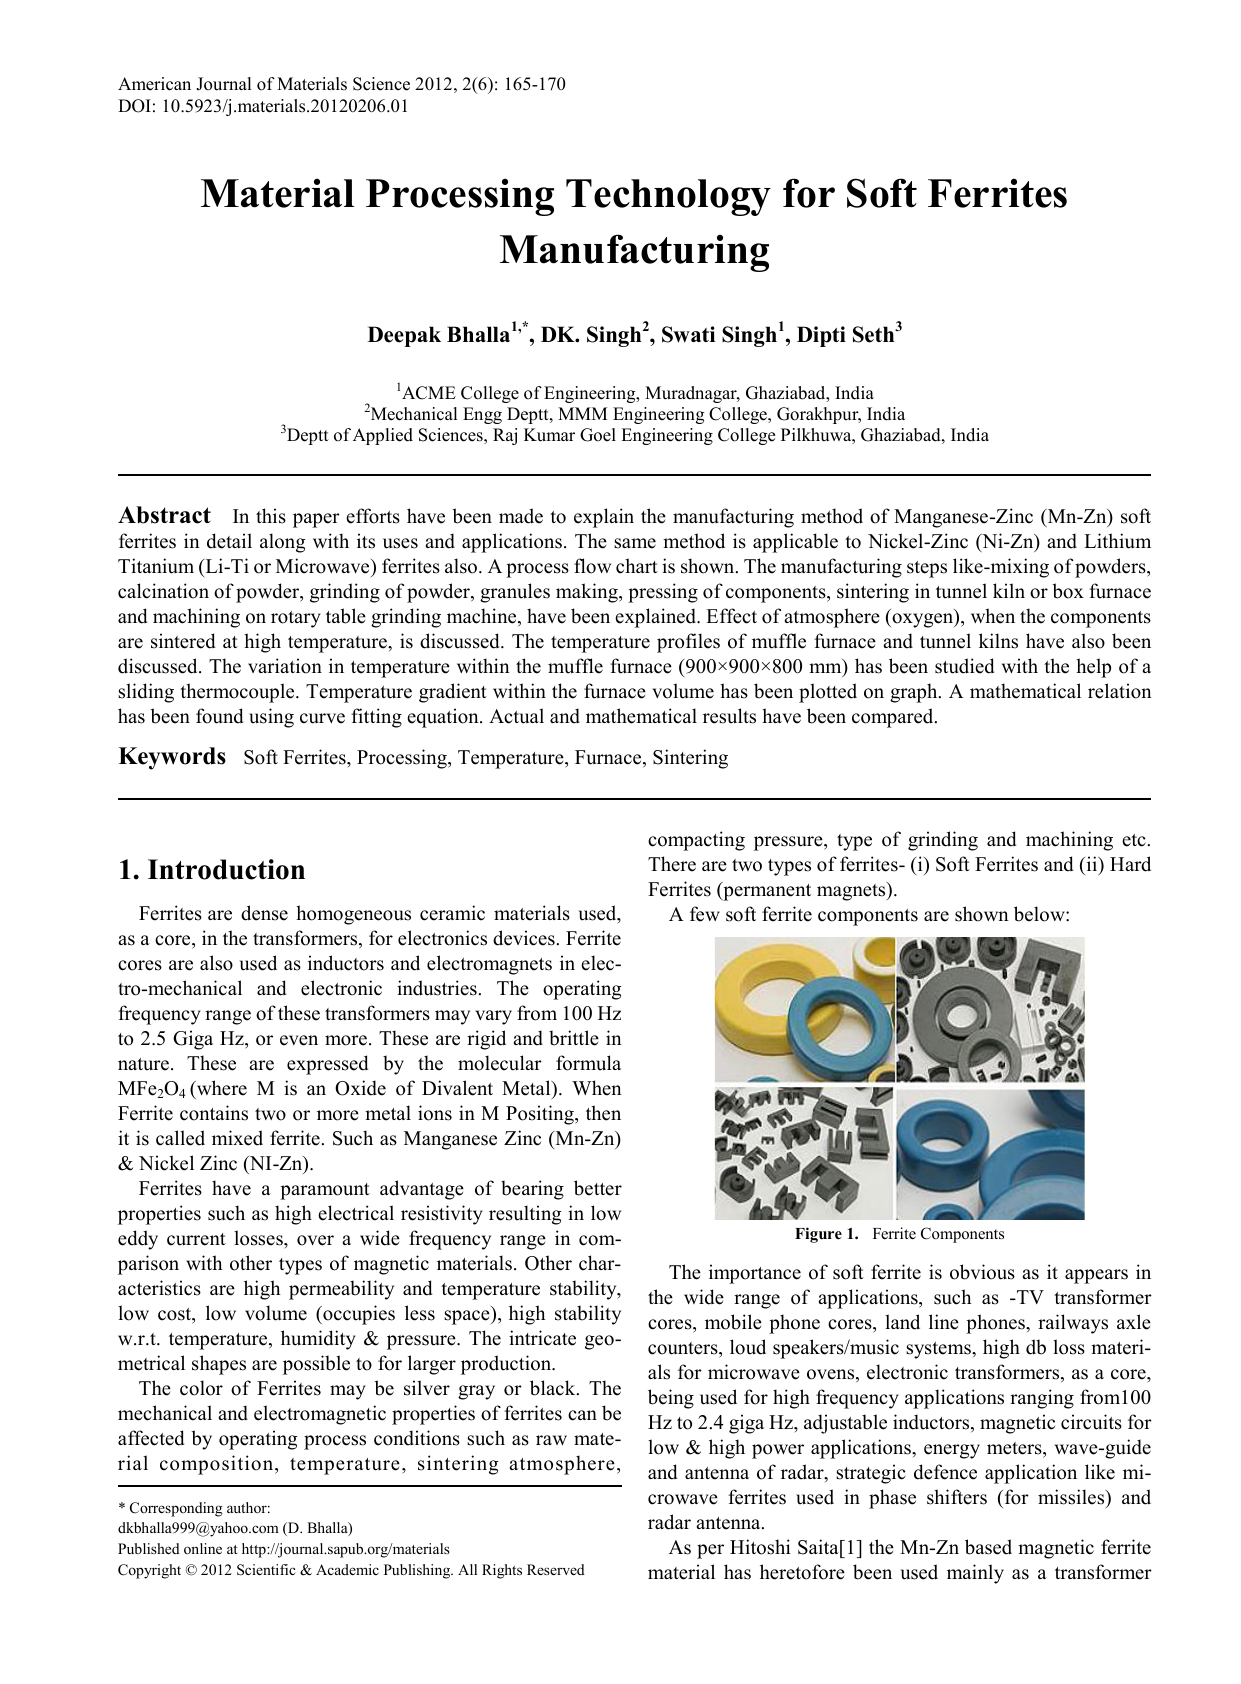 Material Processing Technology for Soft Ferrites Manufacturing